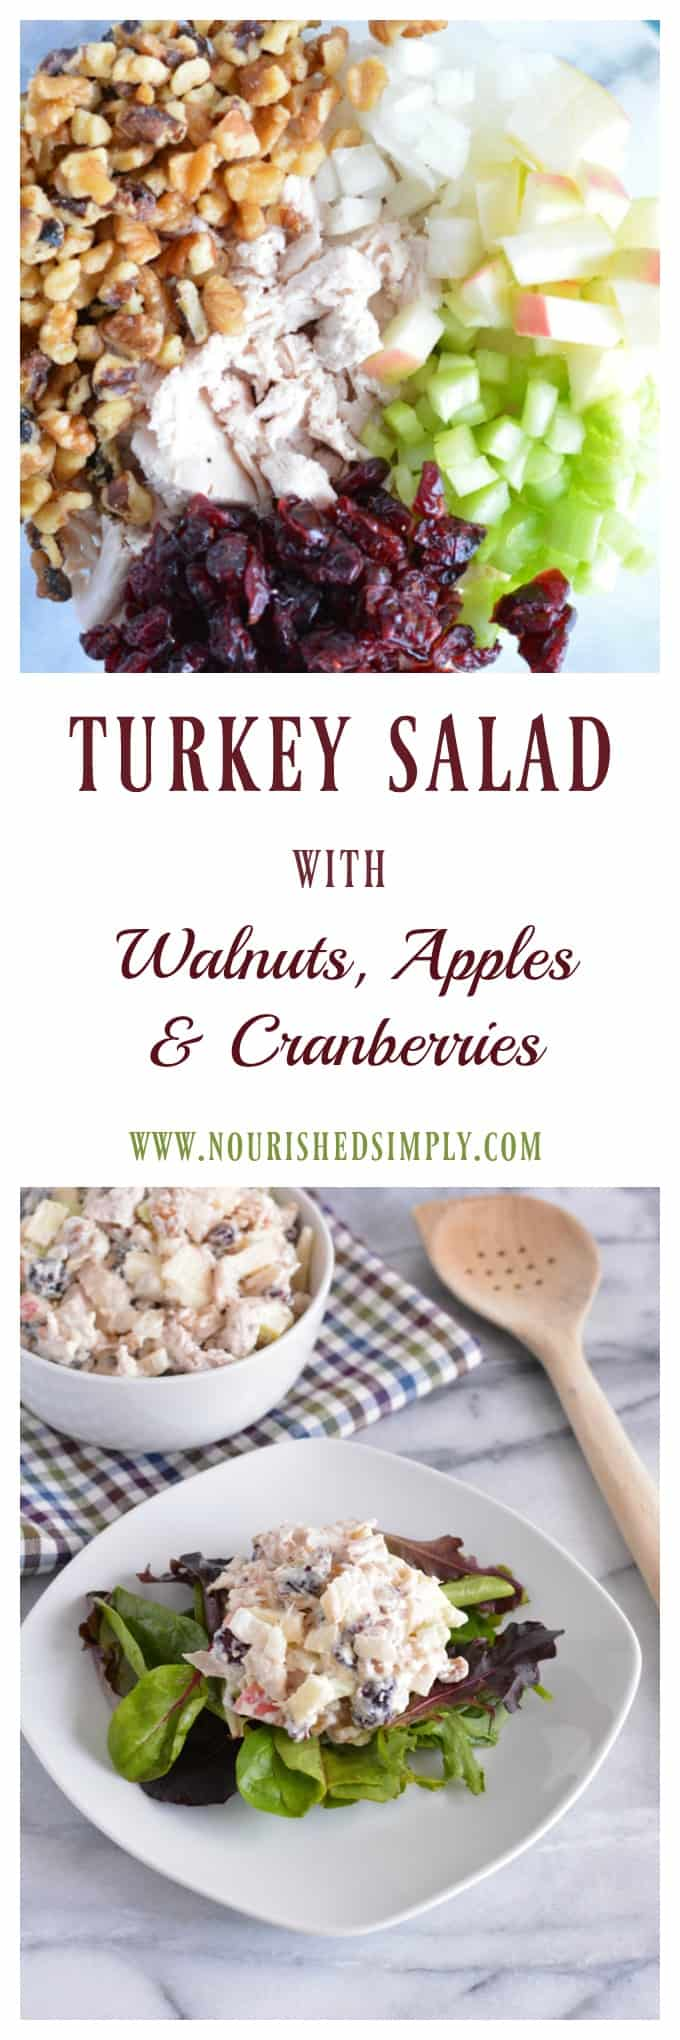 Use up leftover turkey with the Protein Packed Turkey Salad. Perfect meal to help meet your macros. #turkey #leftovers #thanksgiving #holiday #christmas #salad #macros